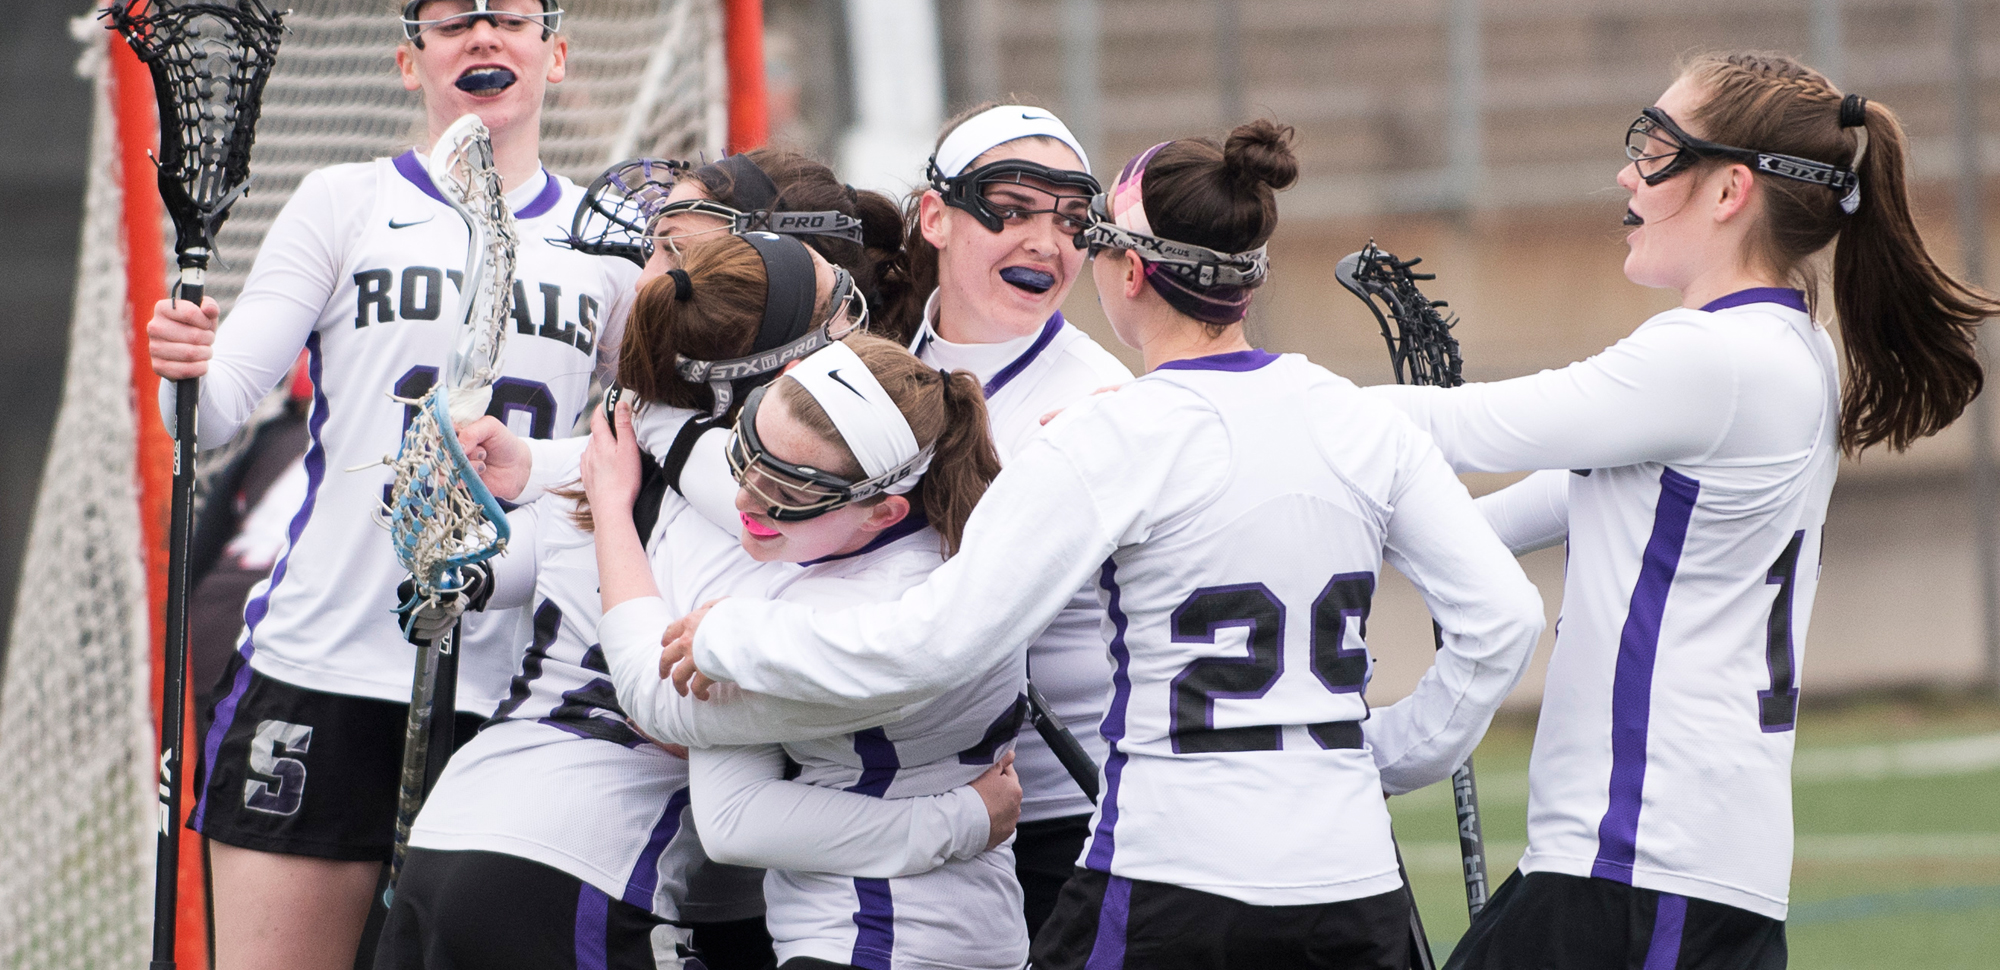 Women's Lacrosse Program to Host Pair of ID Clinics in July